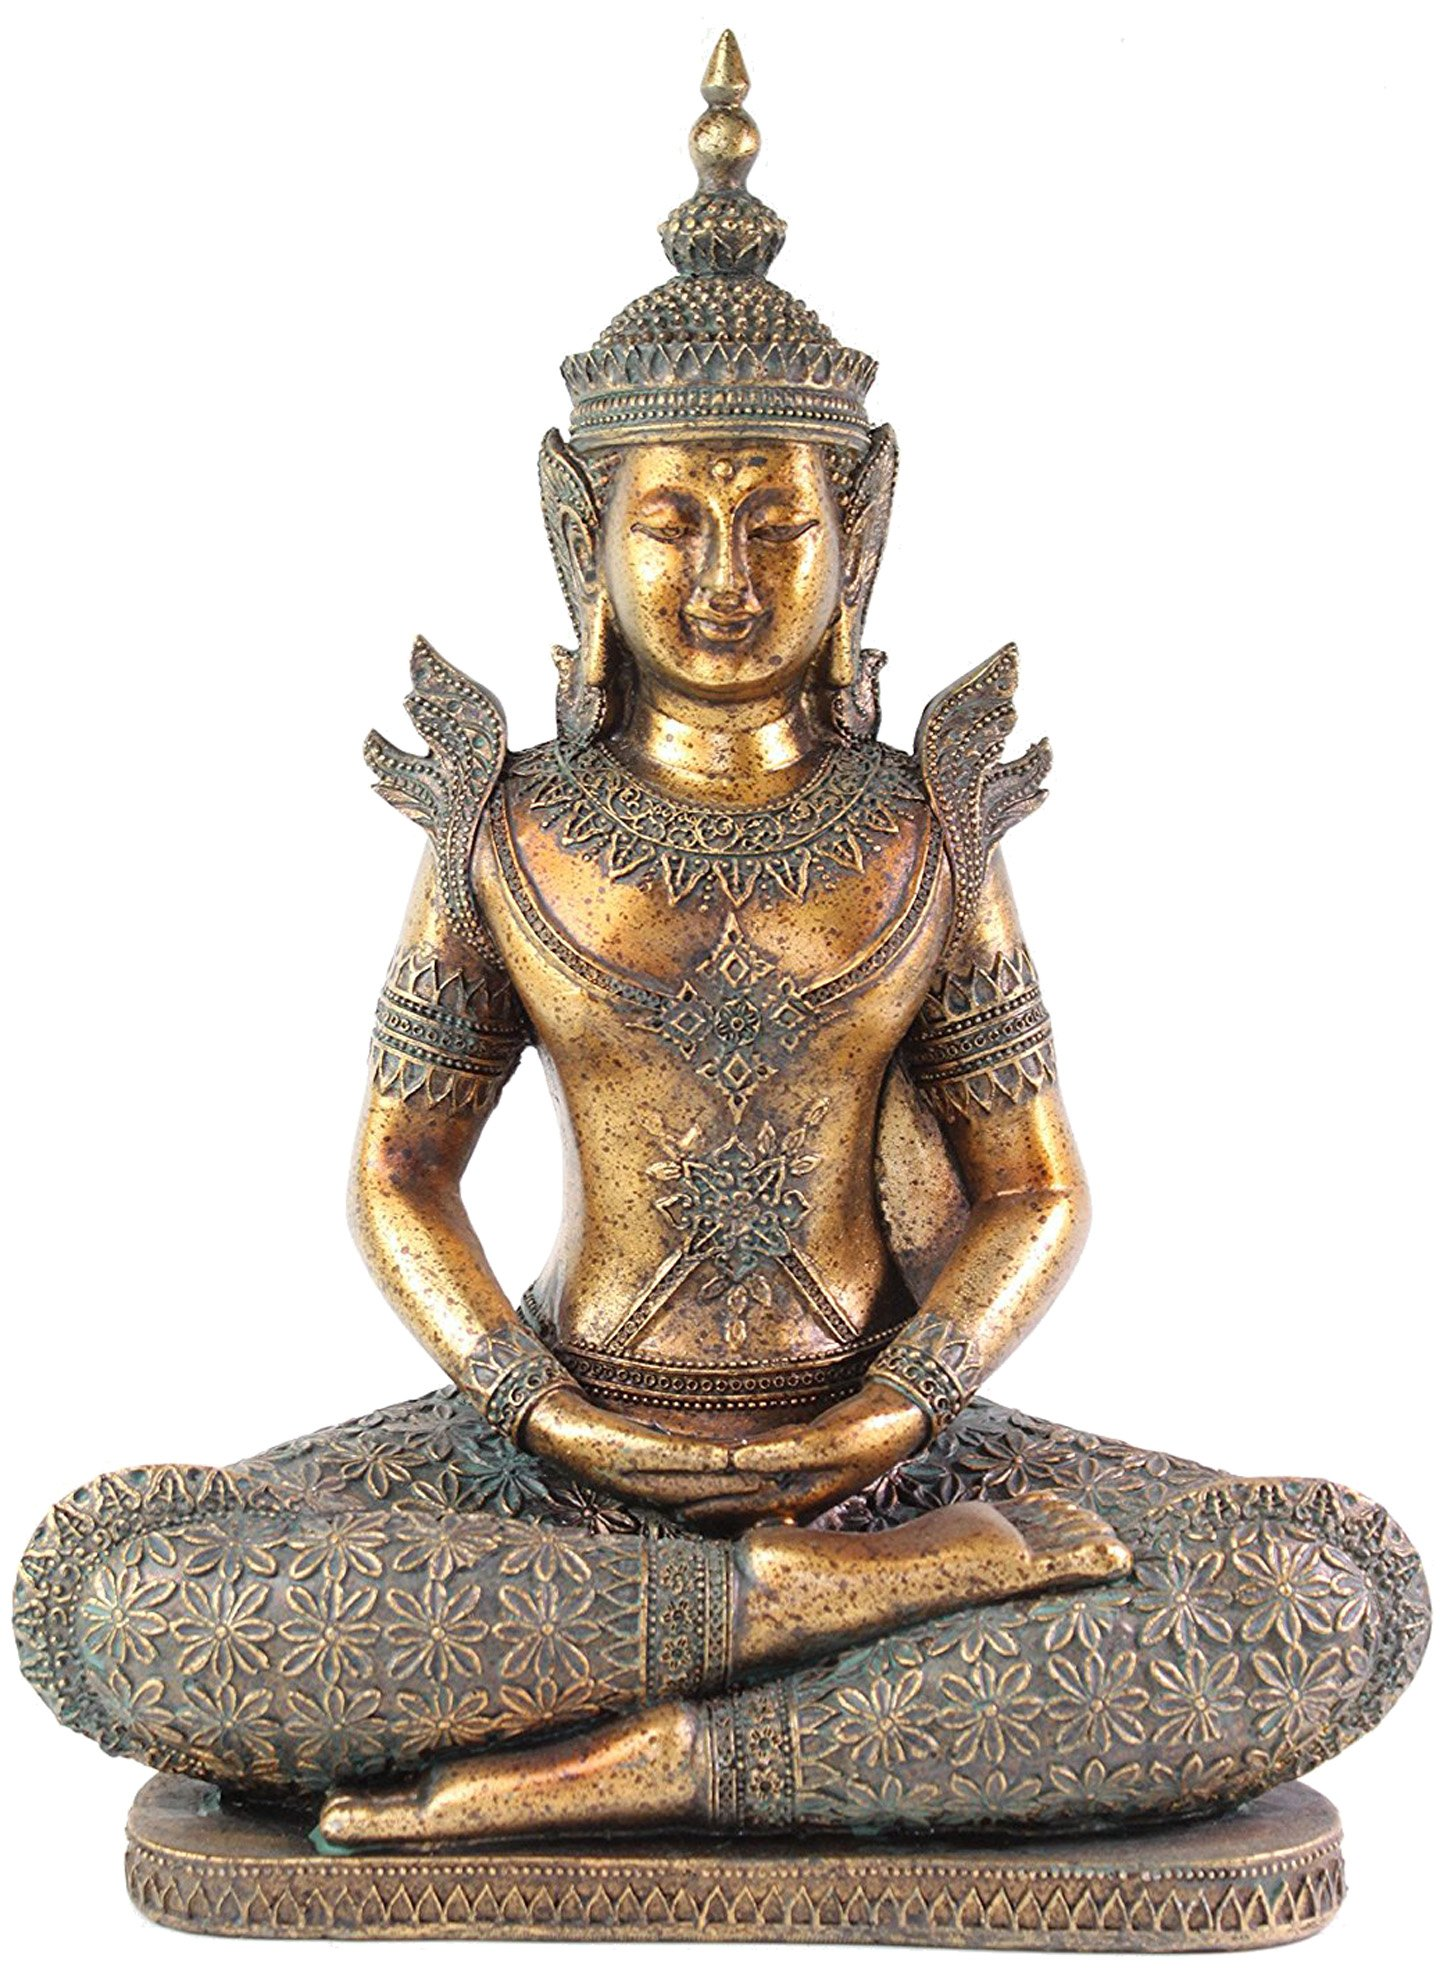 Feng Shui 12'' Bronze Buddha Dhyani Mudra Home Decor Peace Statues(G16516)~ We pay your sales tax by We pay your sales tax